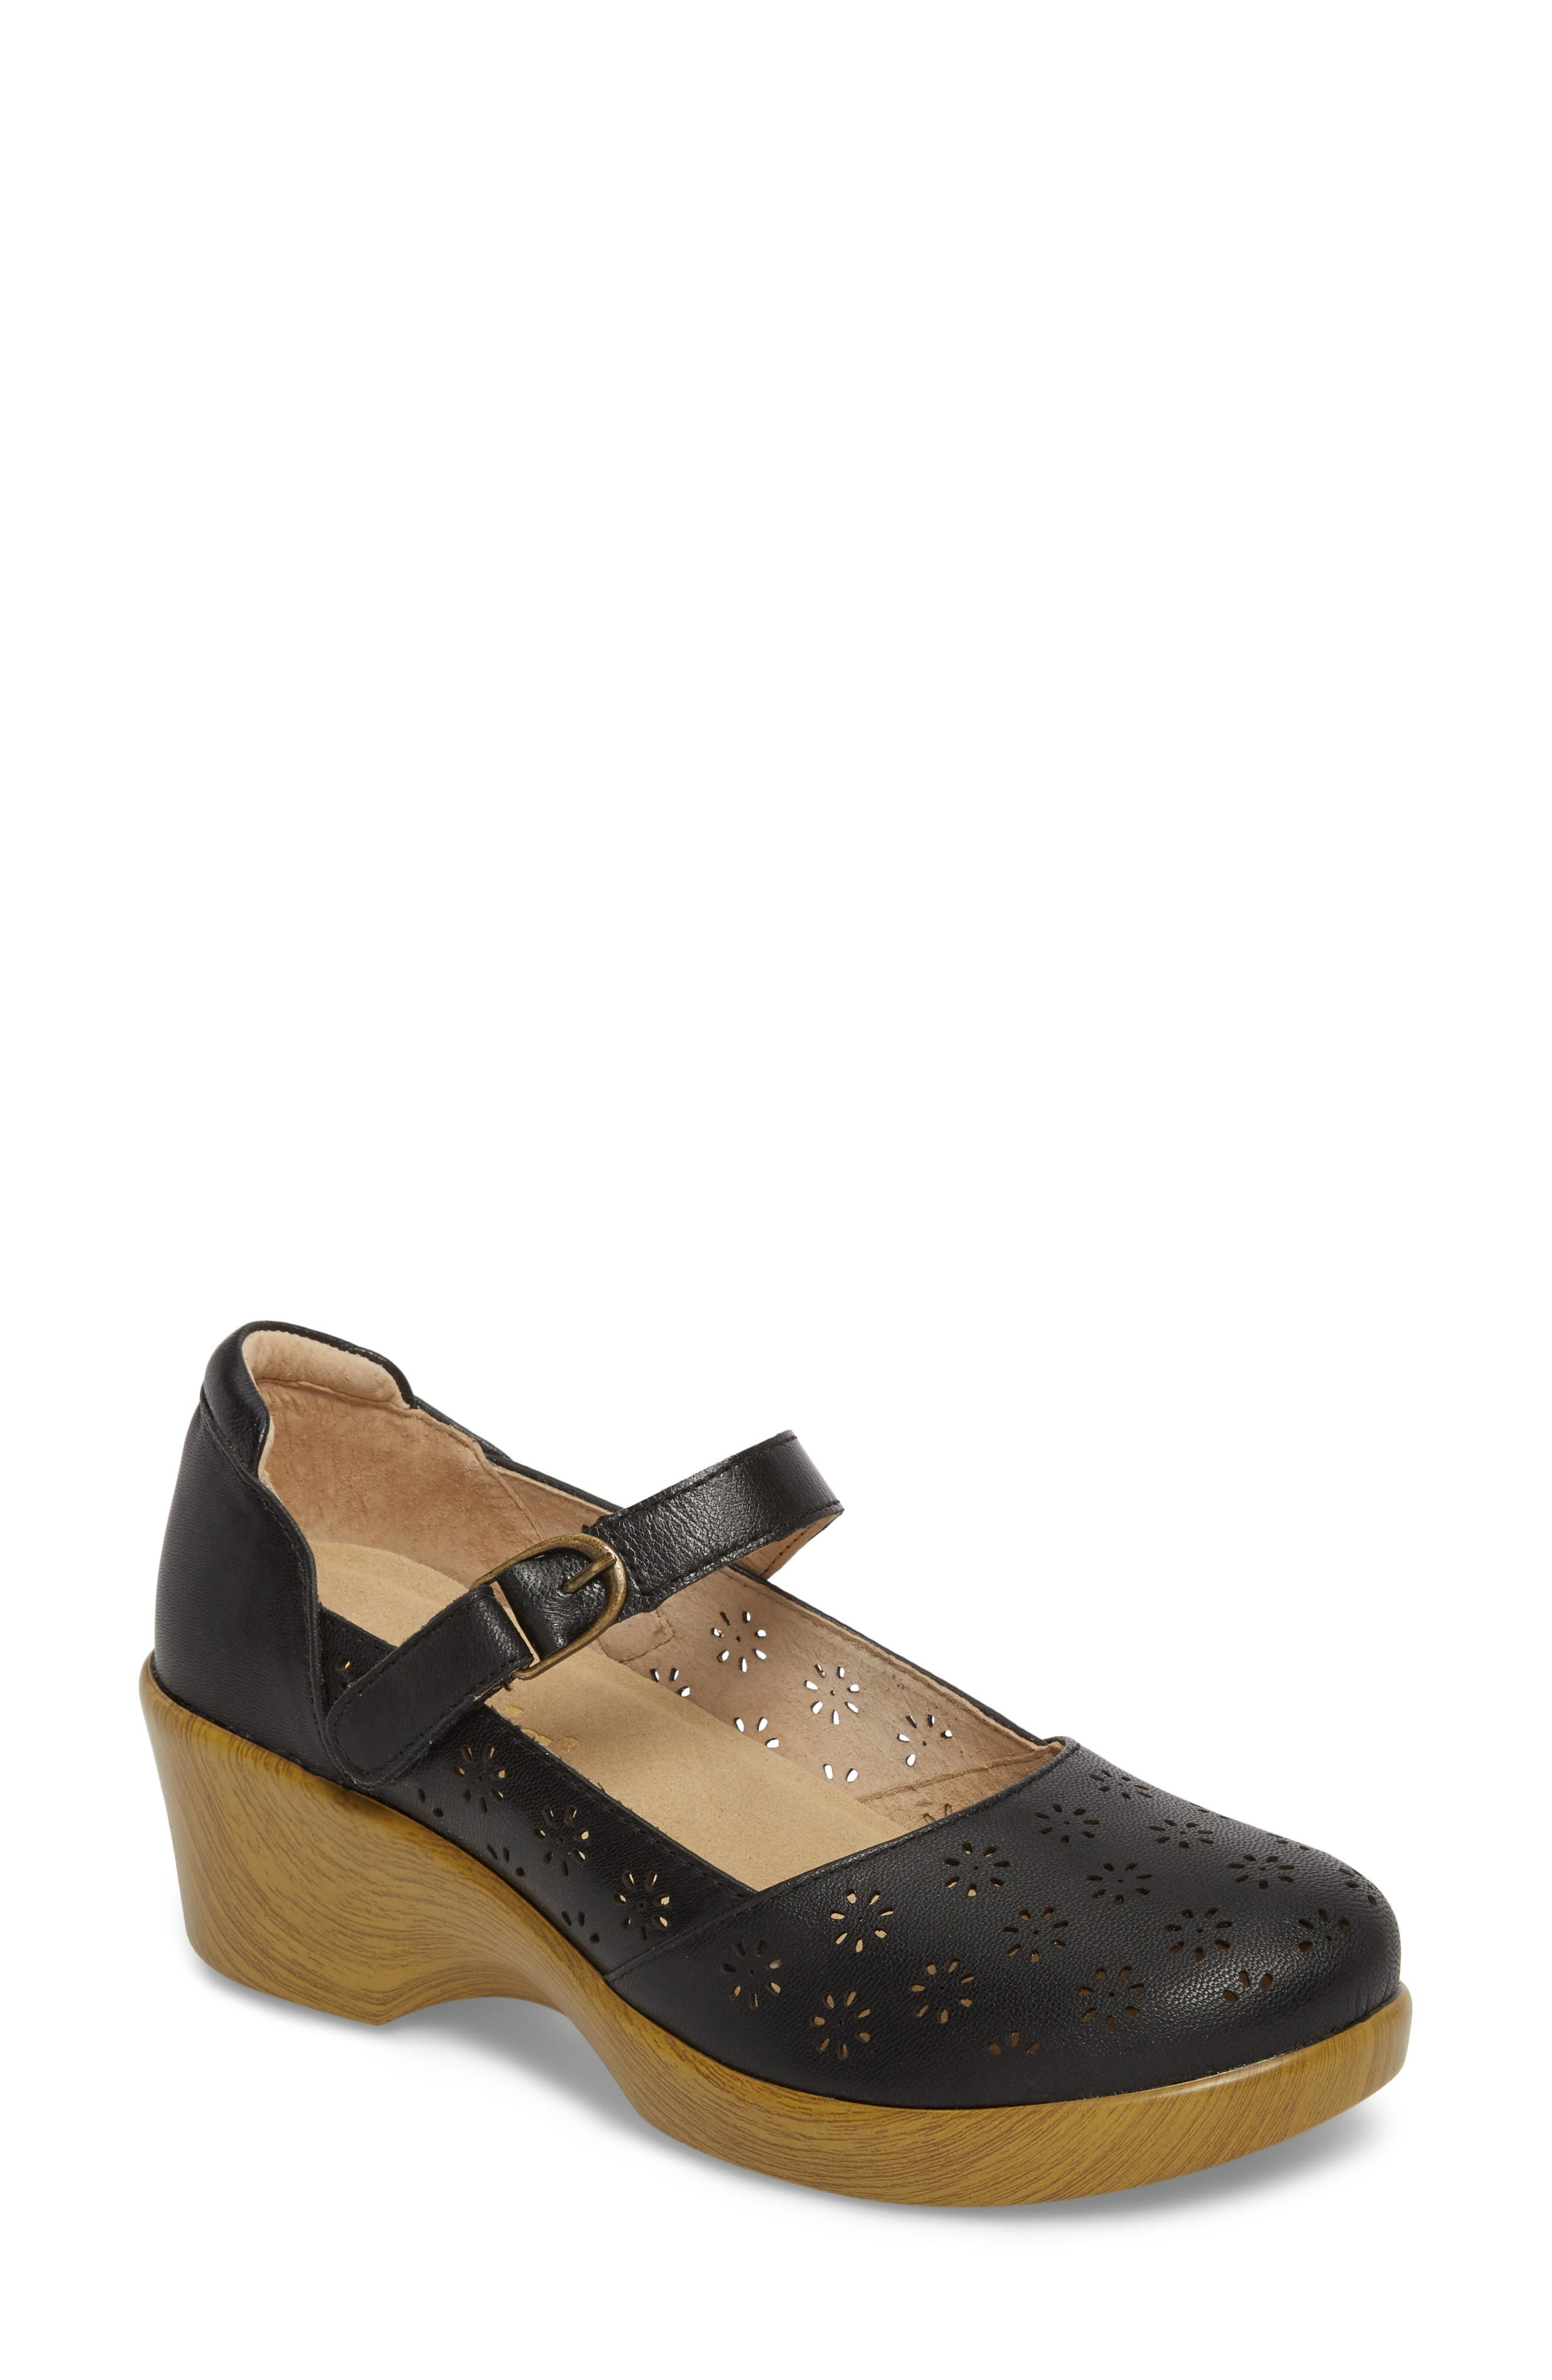 ALEGRIA by PG Lite Rene Mary Jane Shoe, Main, color, BLACK BURNISH LEATHER